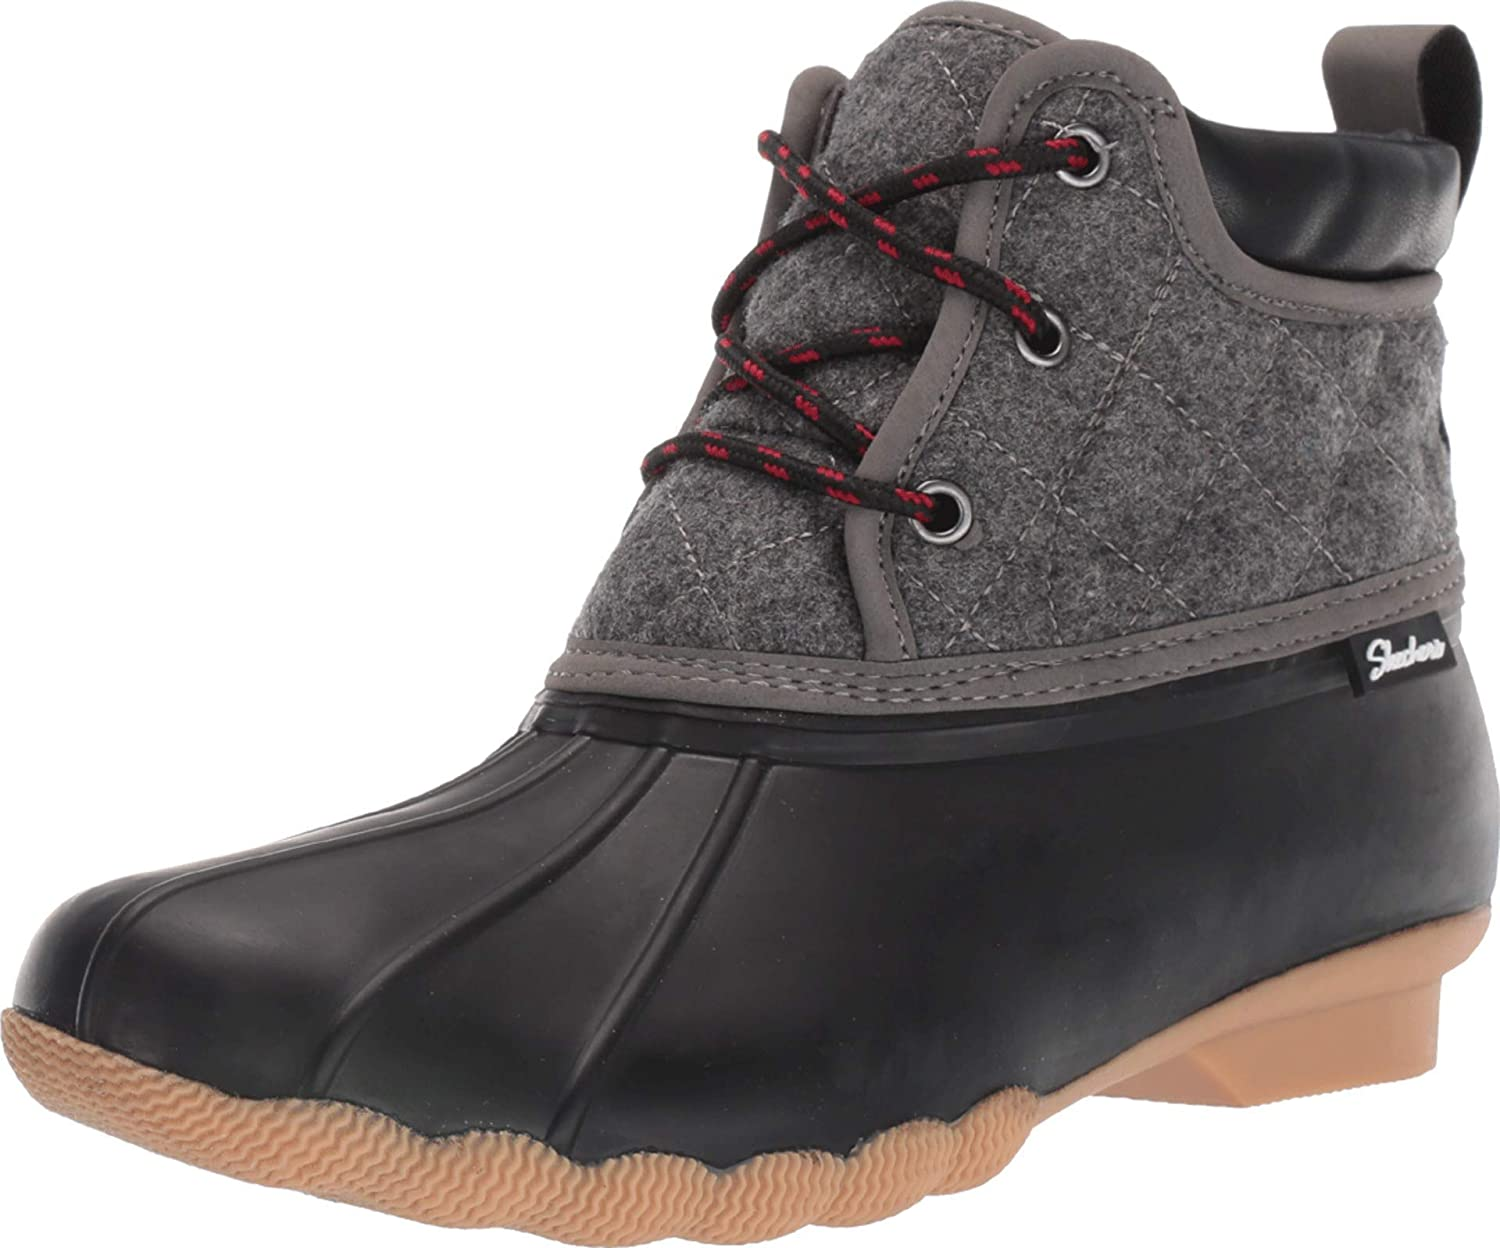 | Skechers Women's Pond-Lil Puddles-Mid Quilted Lace Up Duck Boot with Waterproof Outsole Rain | Rain Footwear